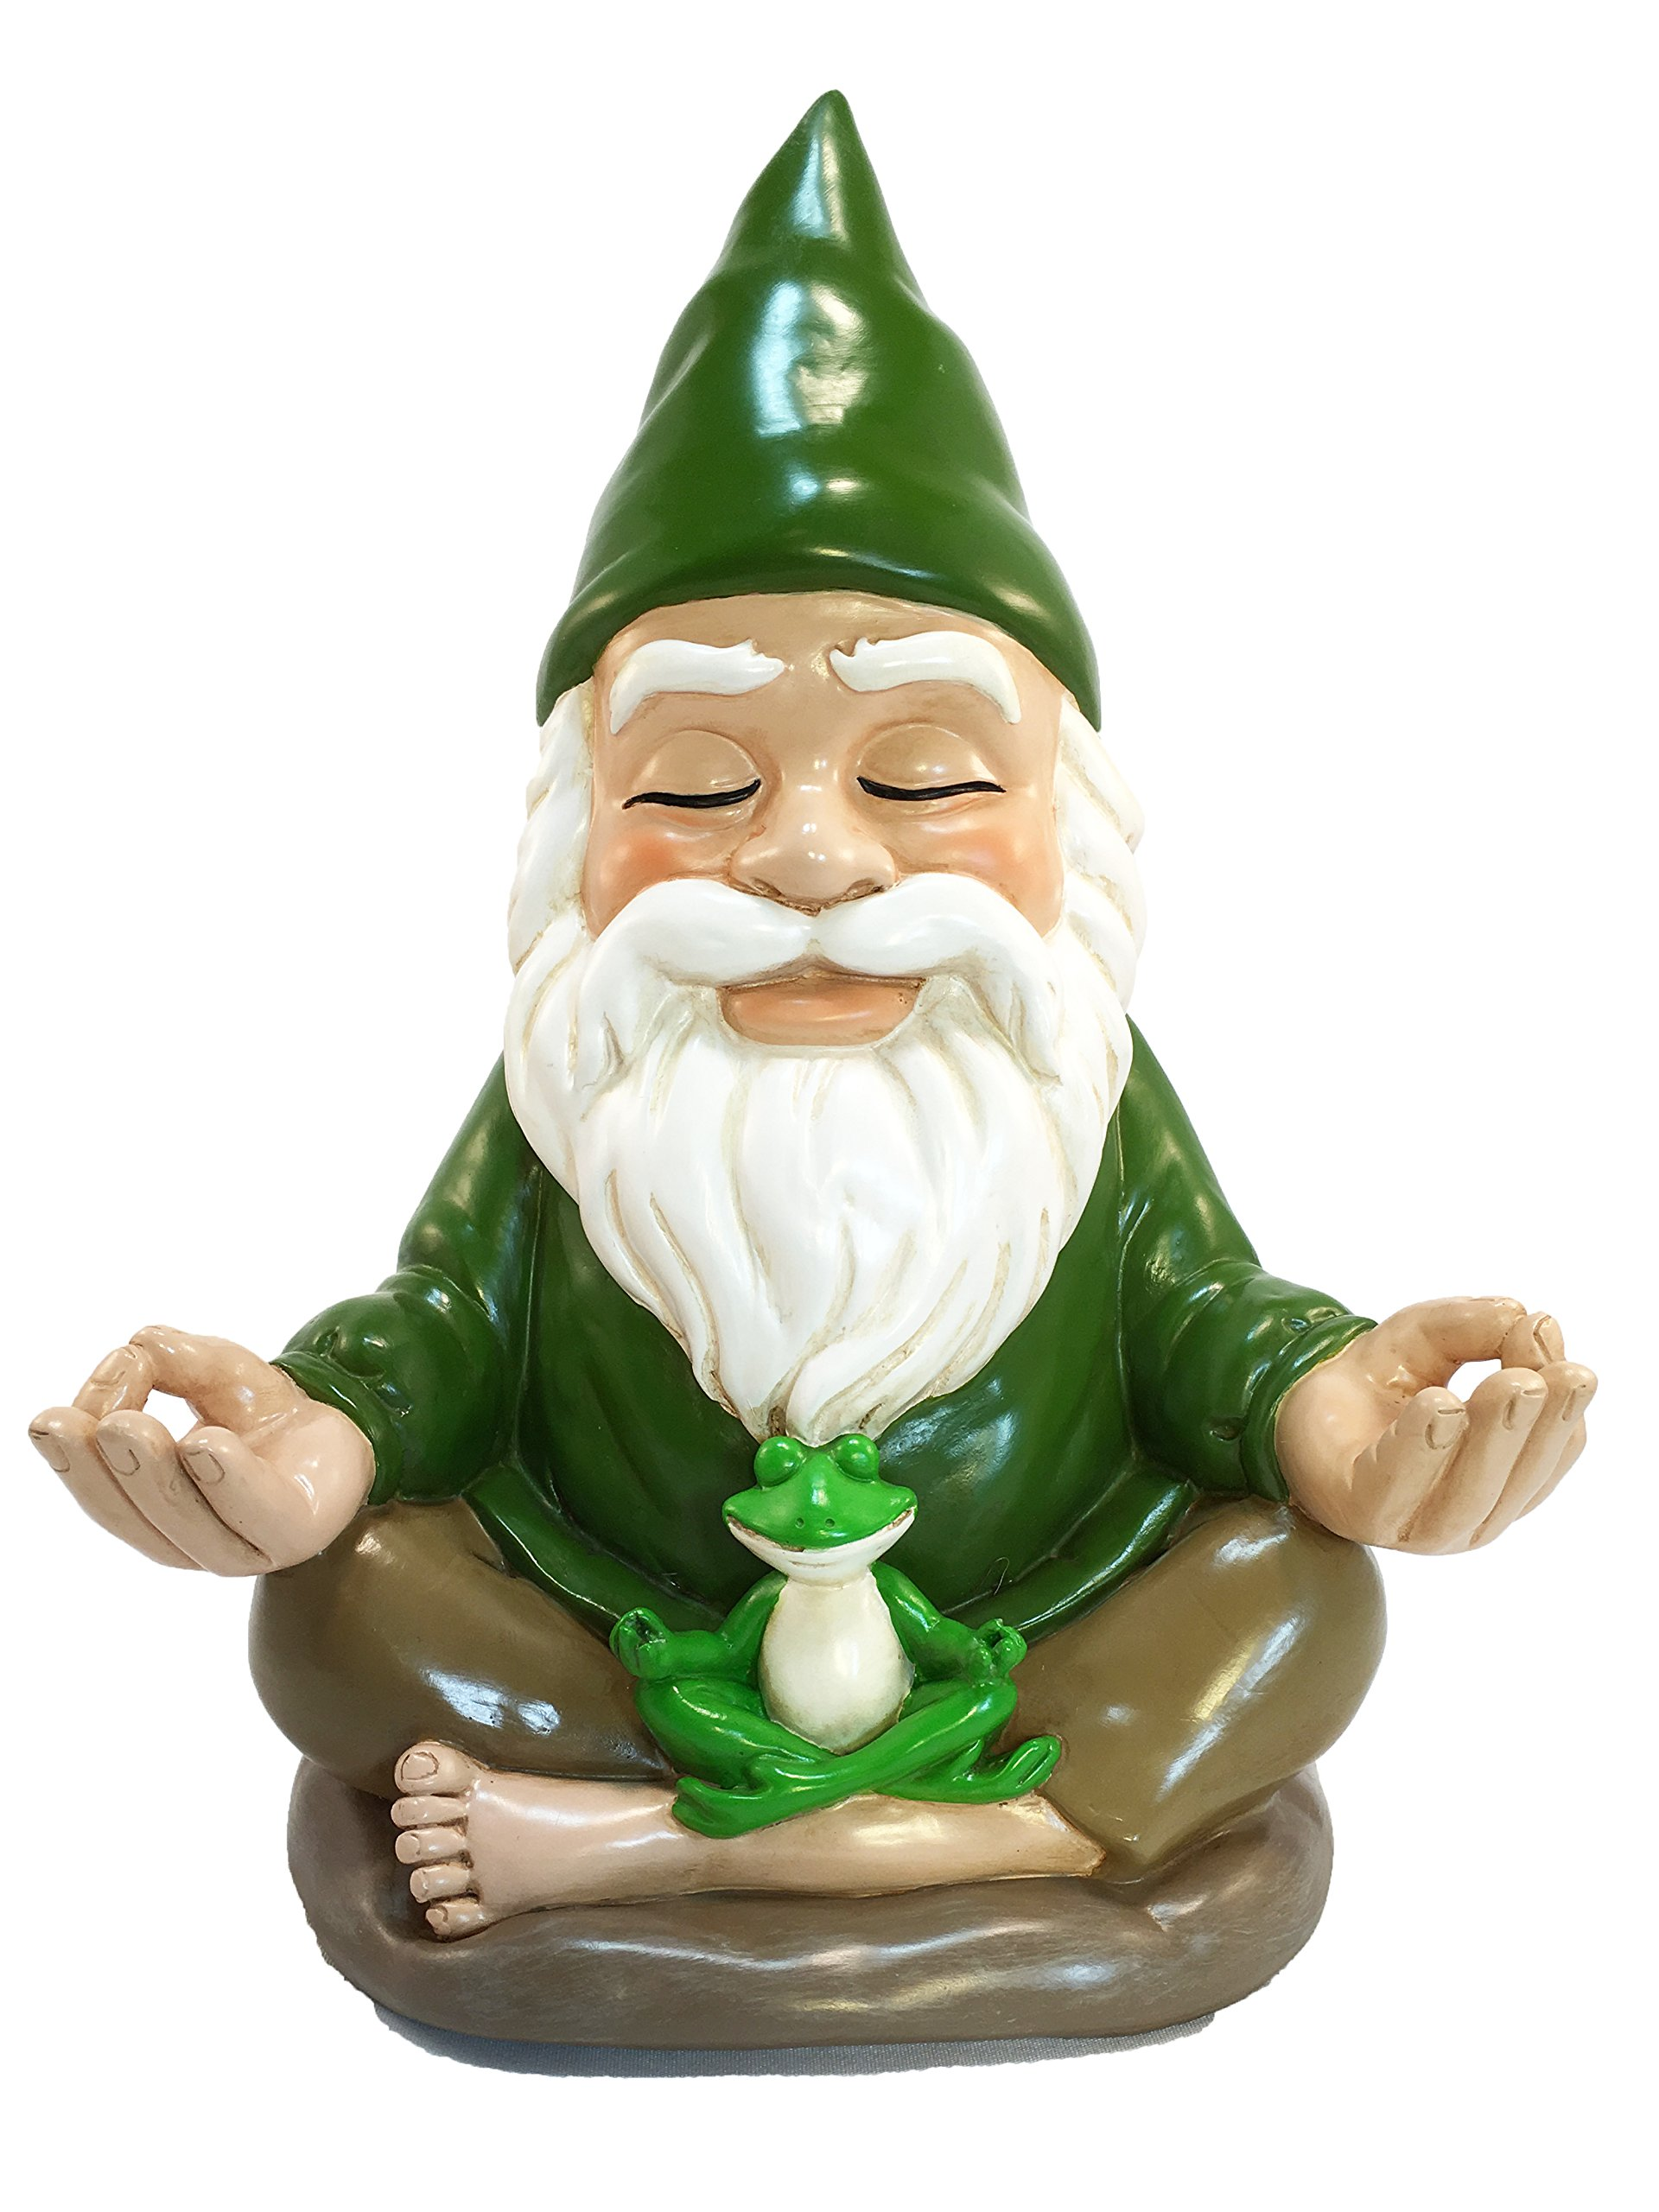 GlitZGlam Zen Gnome - Tranquility and Peacefulness for Your Fairy Garden and Garden Gnomes 9 Inches Tall Miniature Figurine